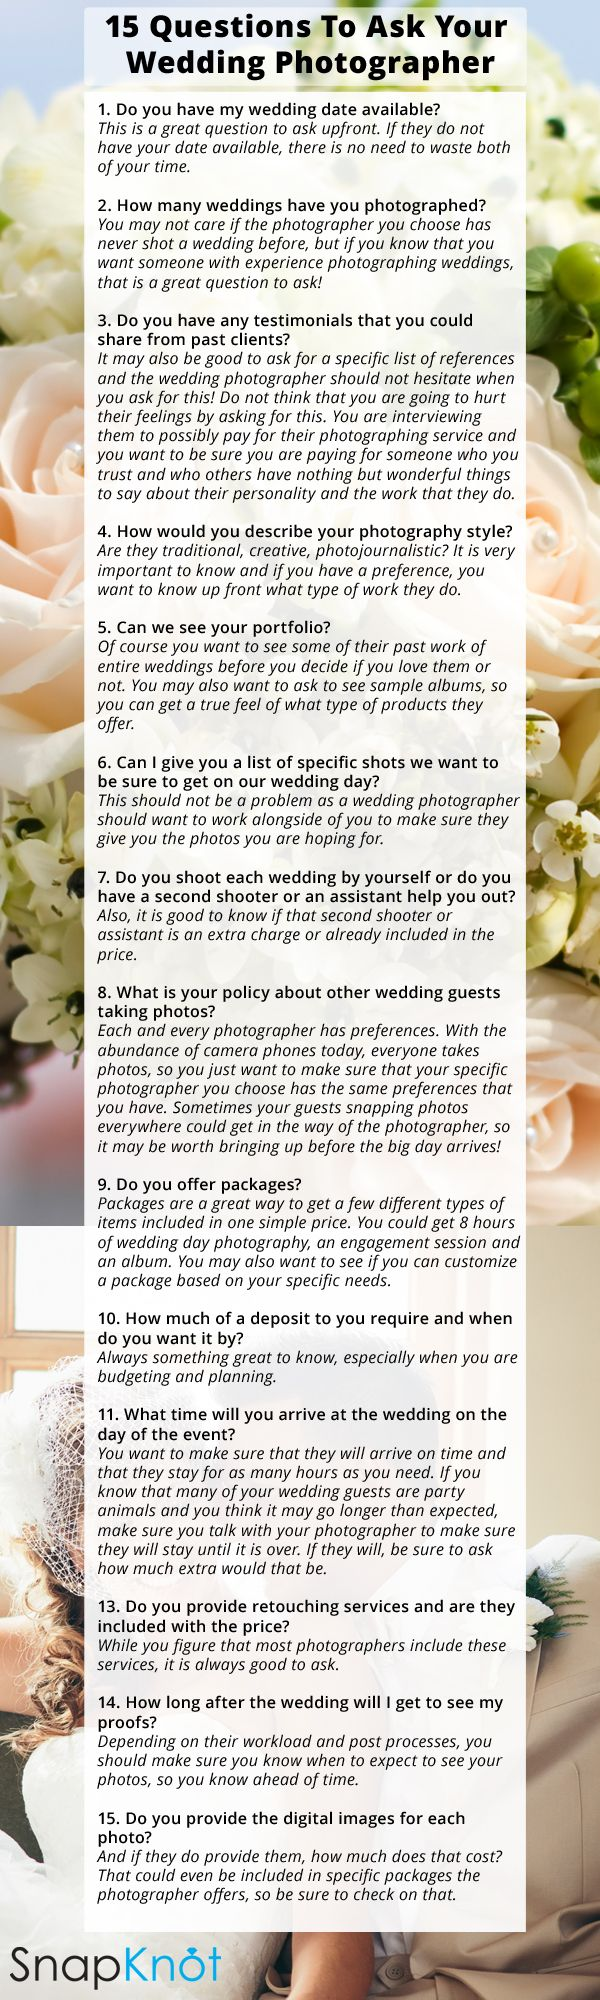 1ad41feb2 15 questions to ask a wedding photographer before you book them! | Wedding  tips and advice